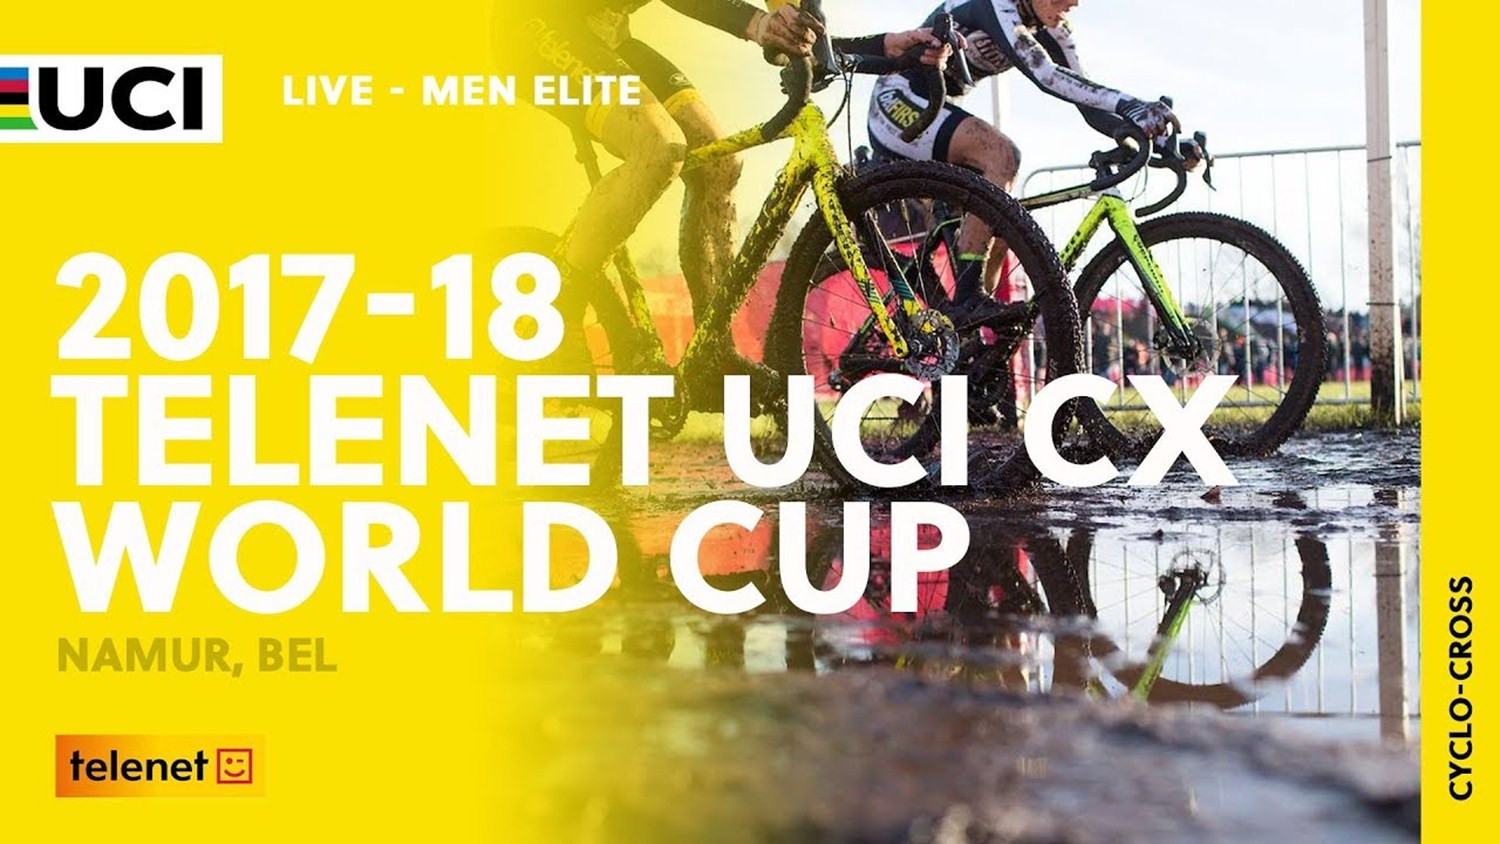 UCI Cyclo-cross World Cup set to continue in Belgium